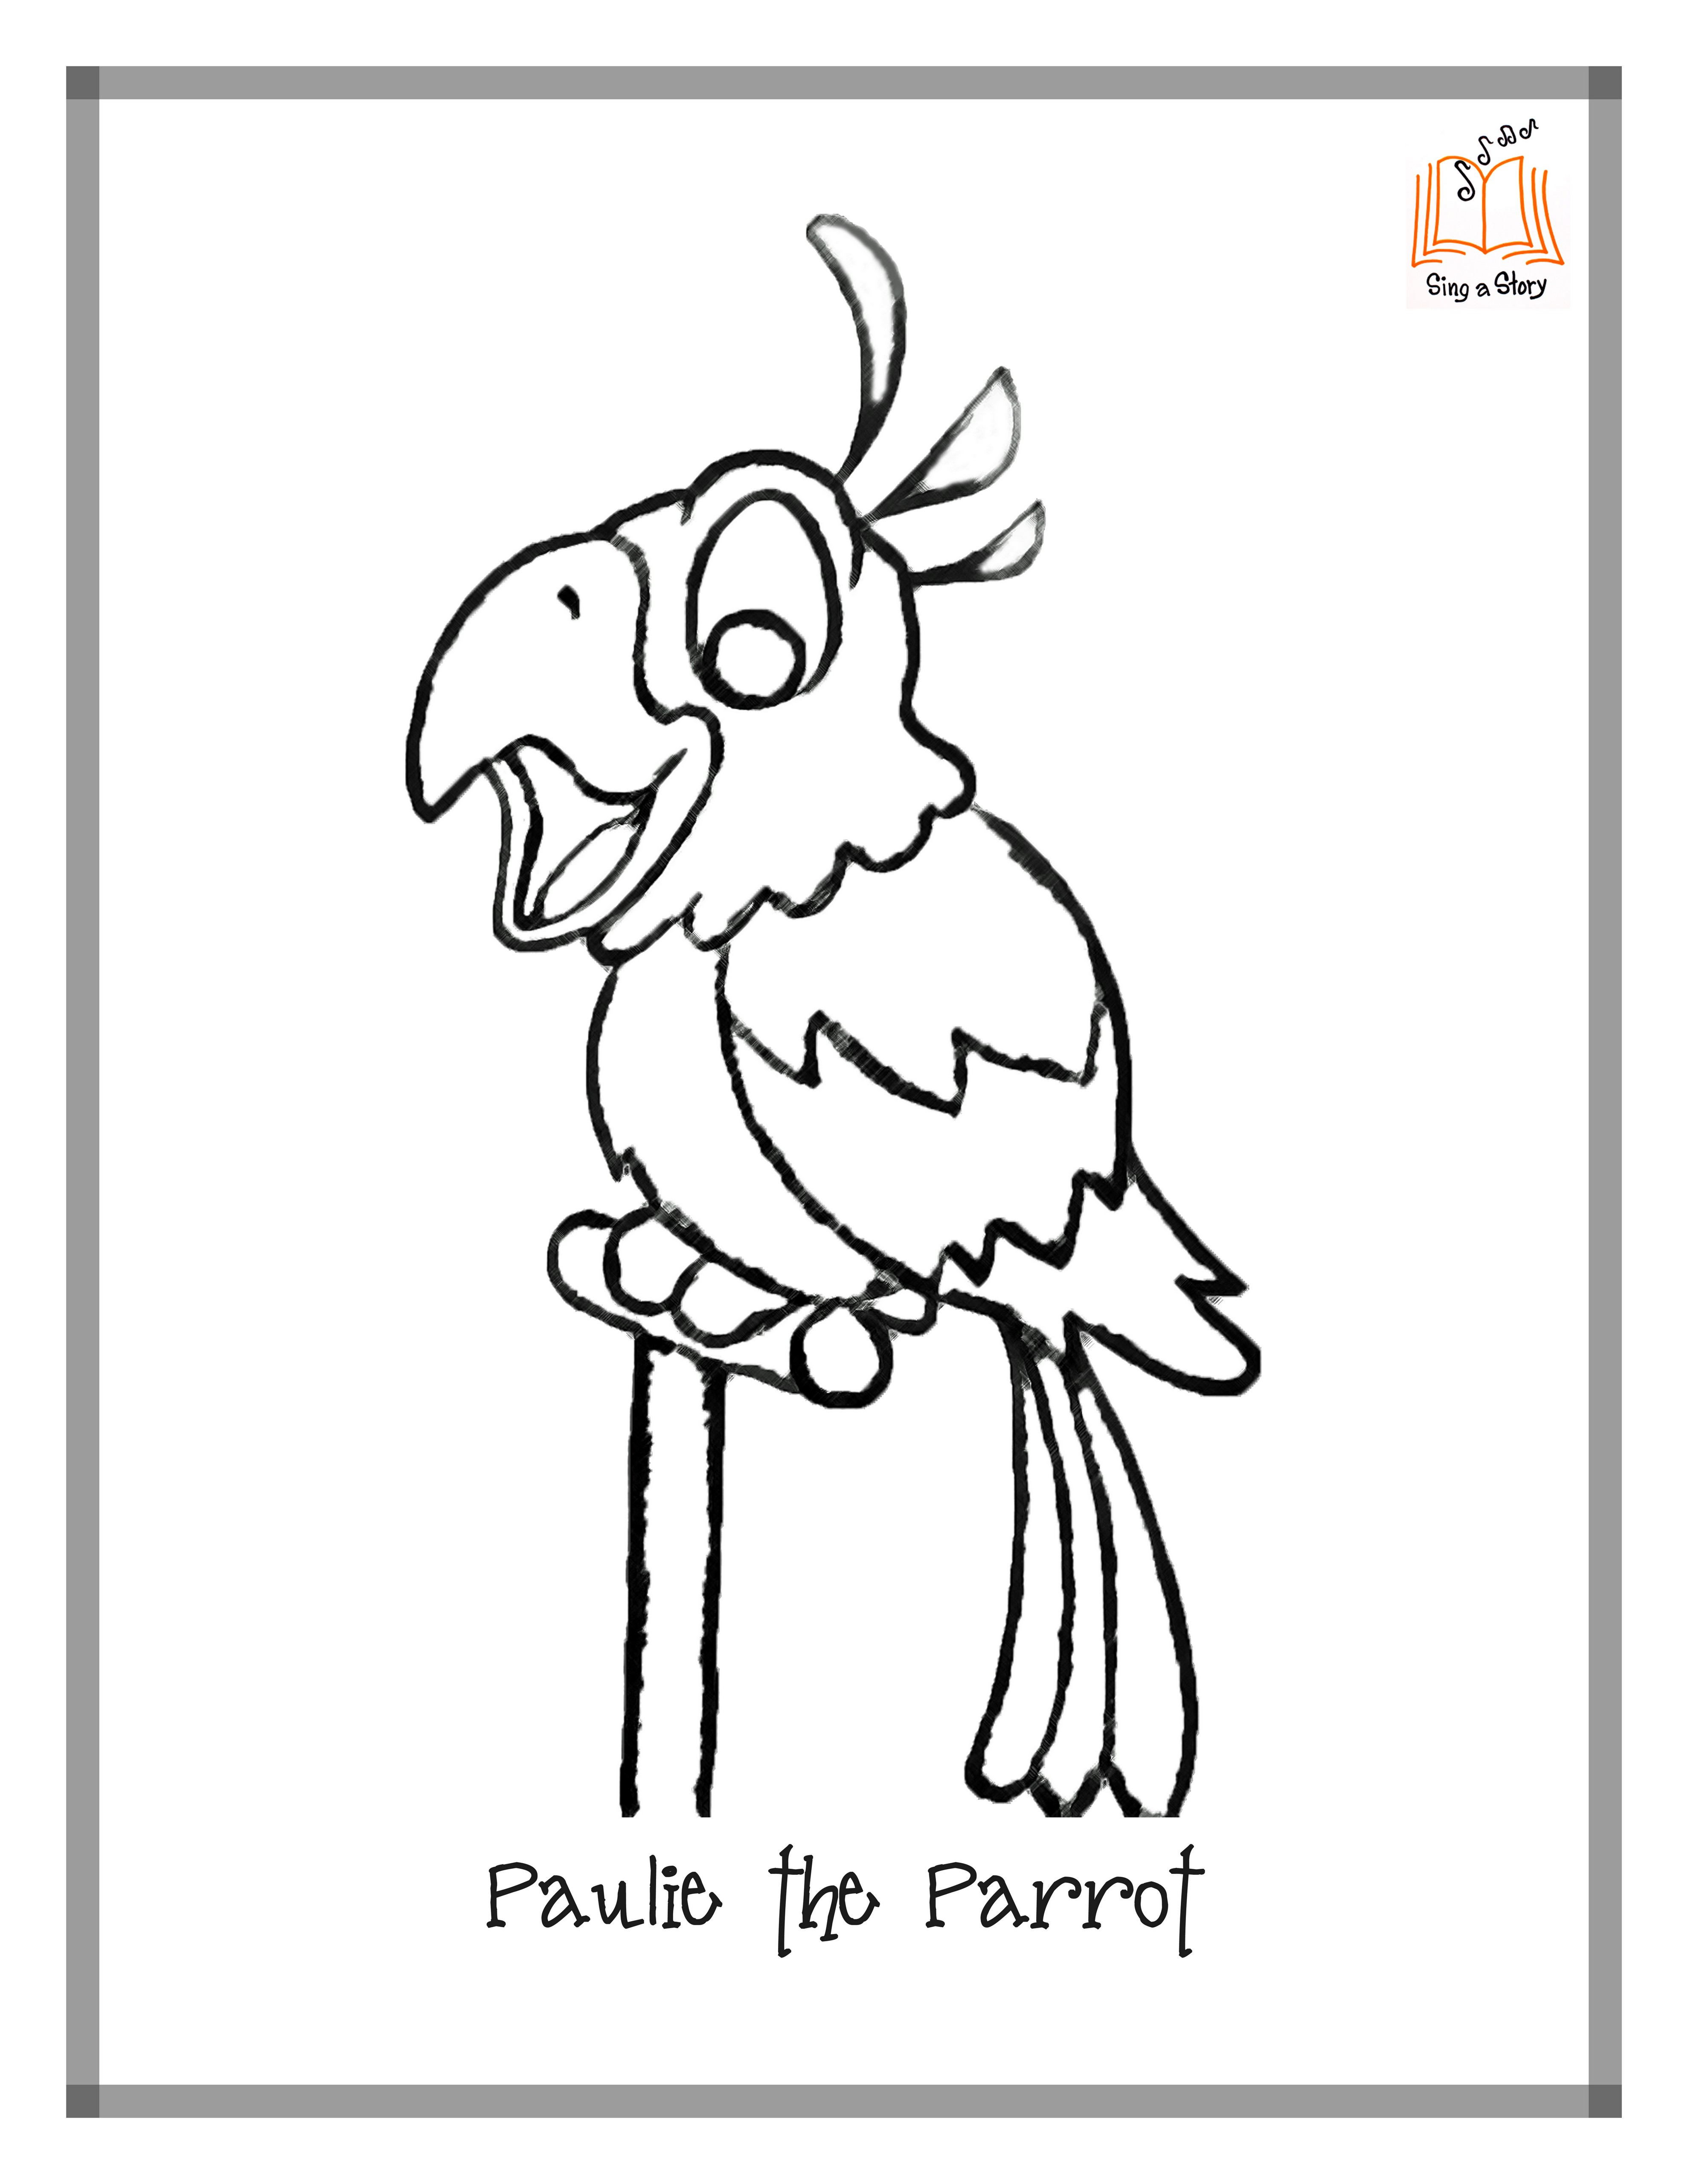 Free Pittsburgh Pirate Coloring Pages Pirate Parrot Coloring Pages